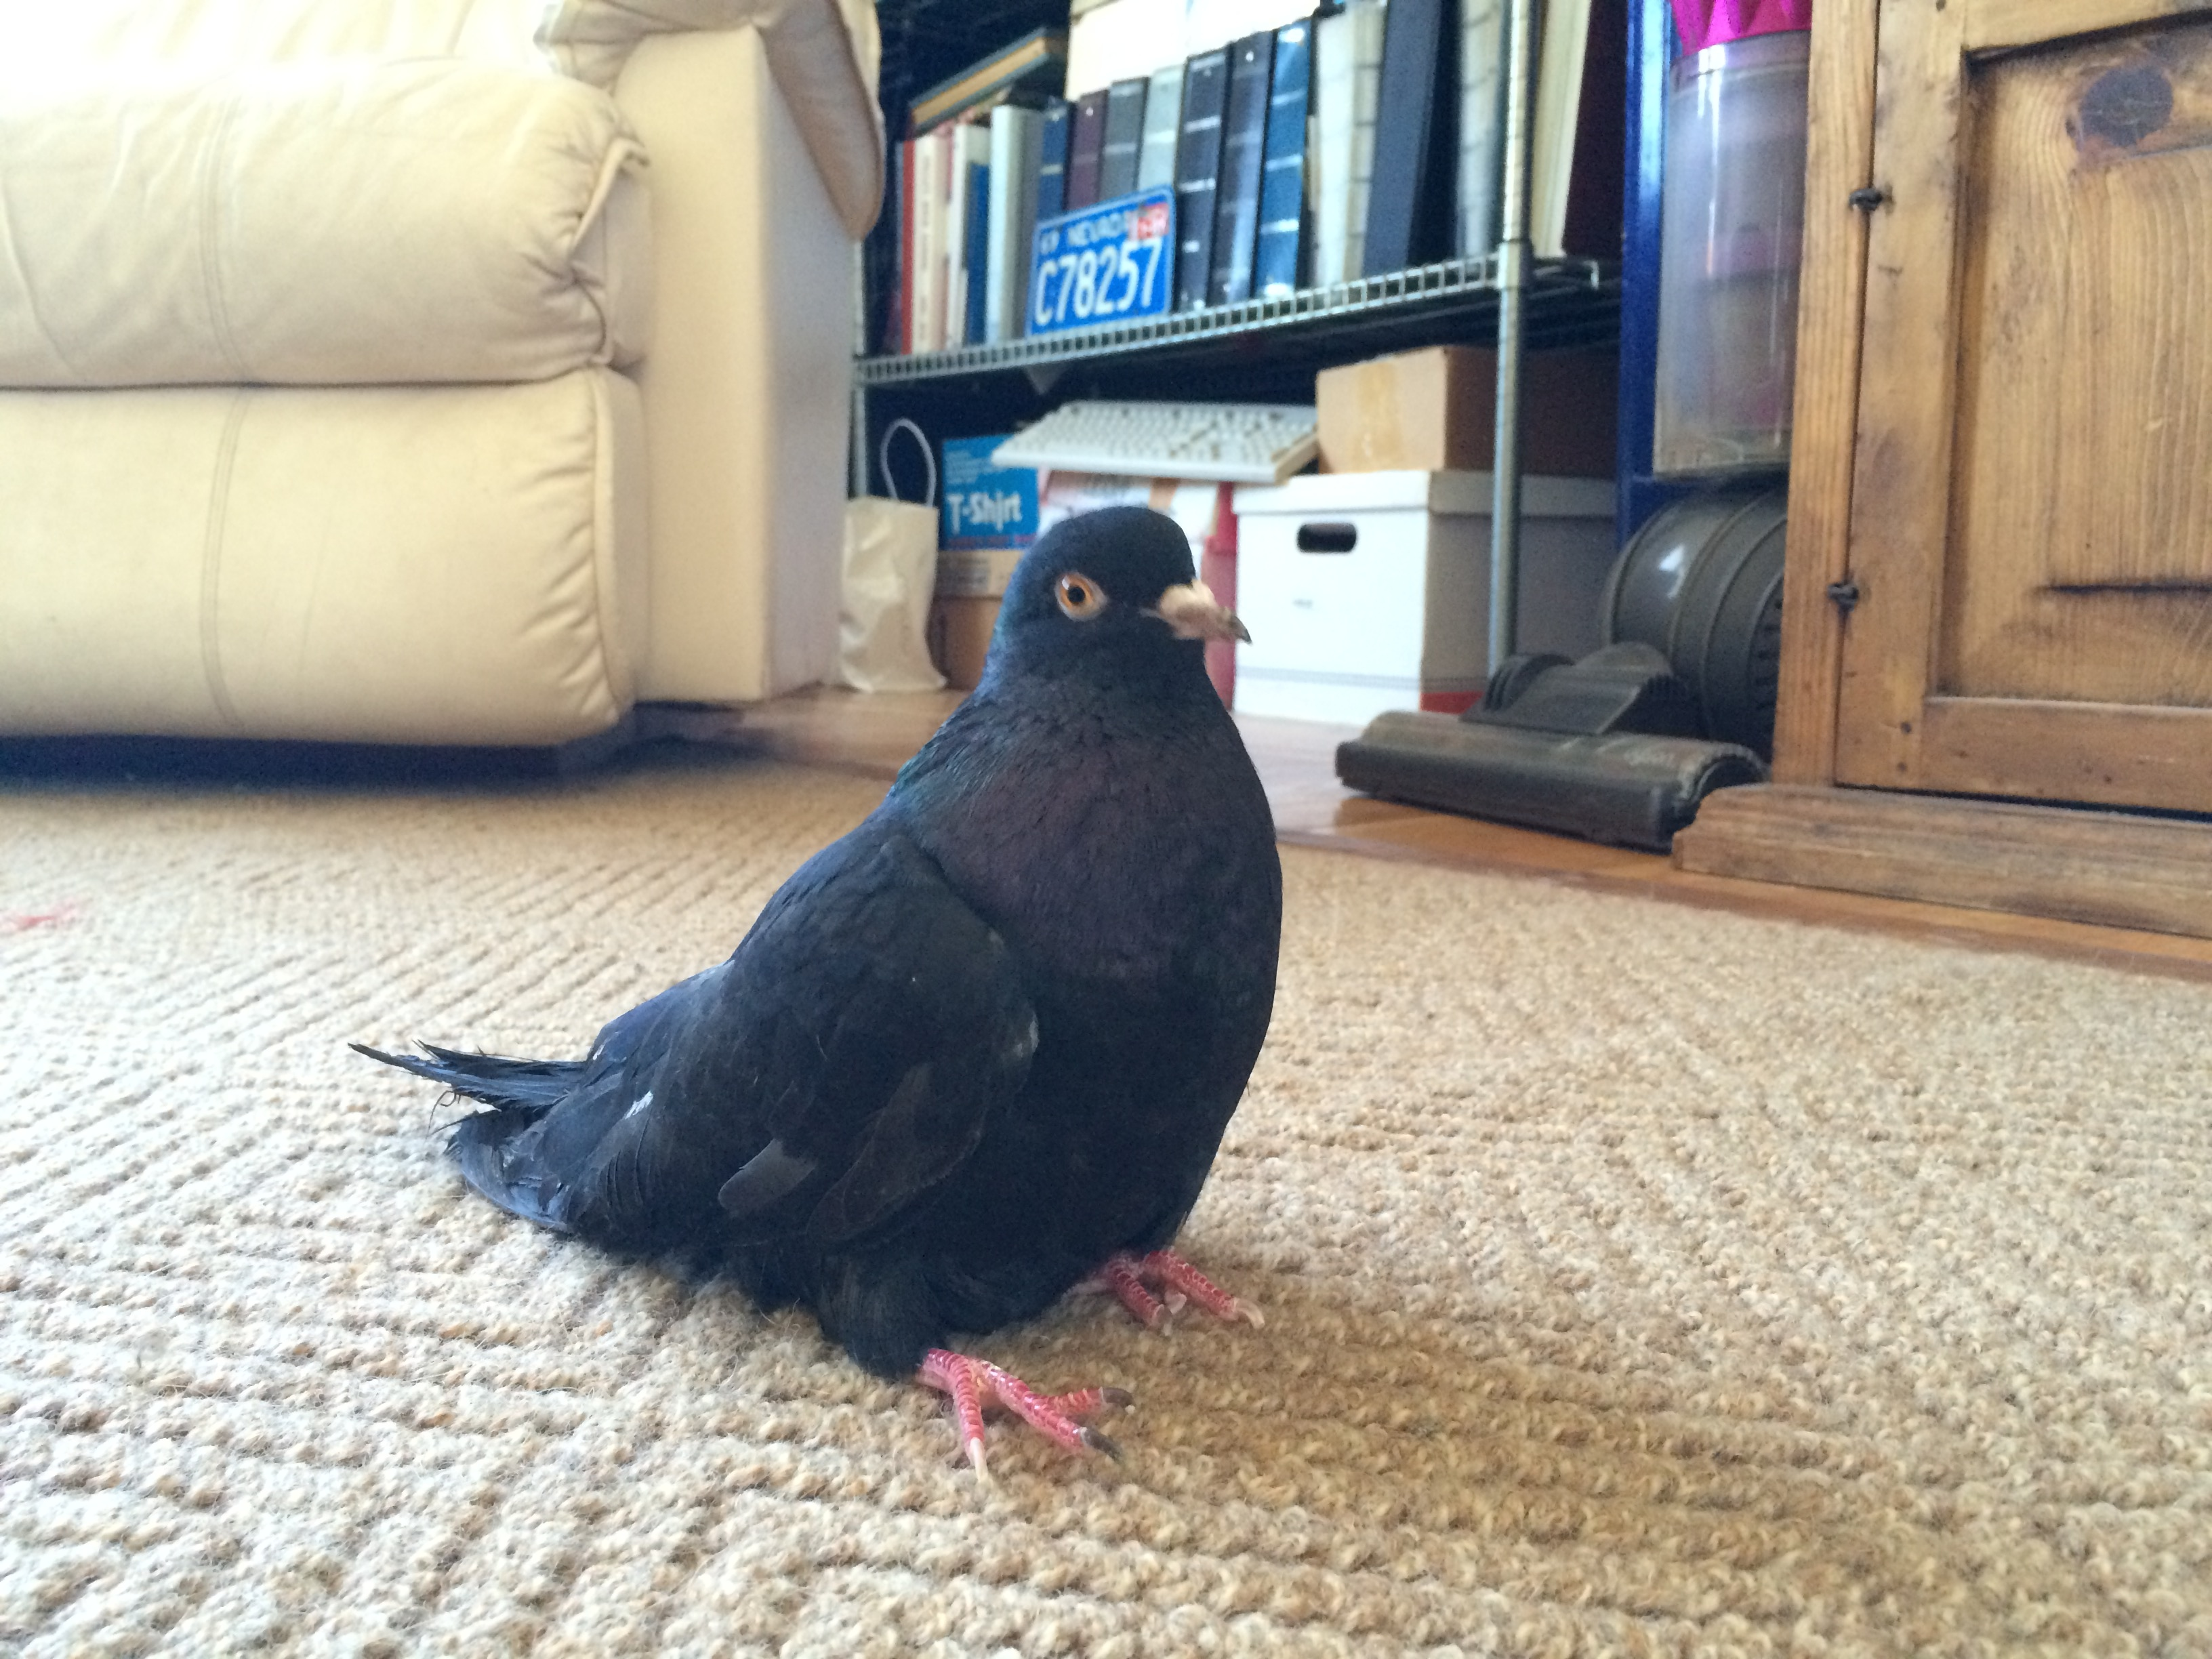 Injured Roller pigeon sits using her tail for support